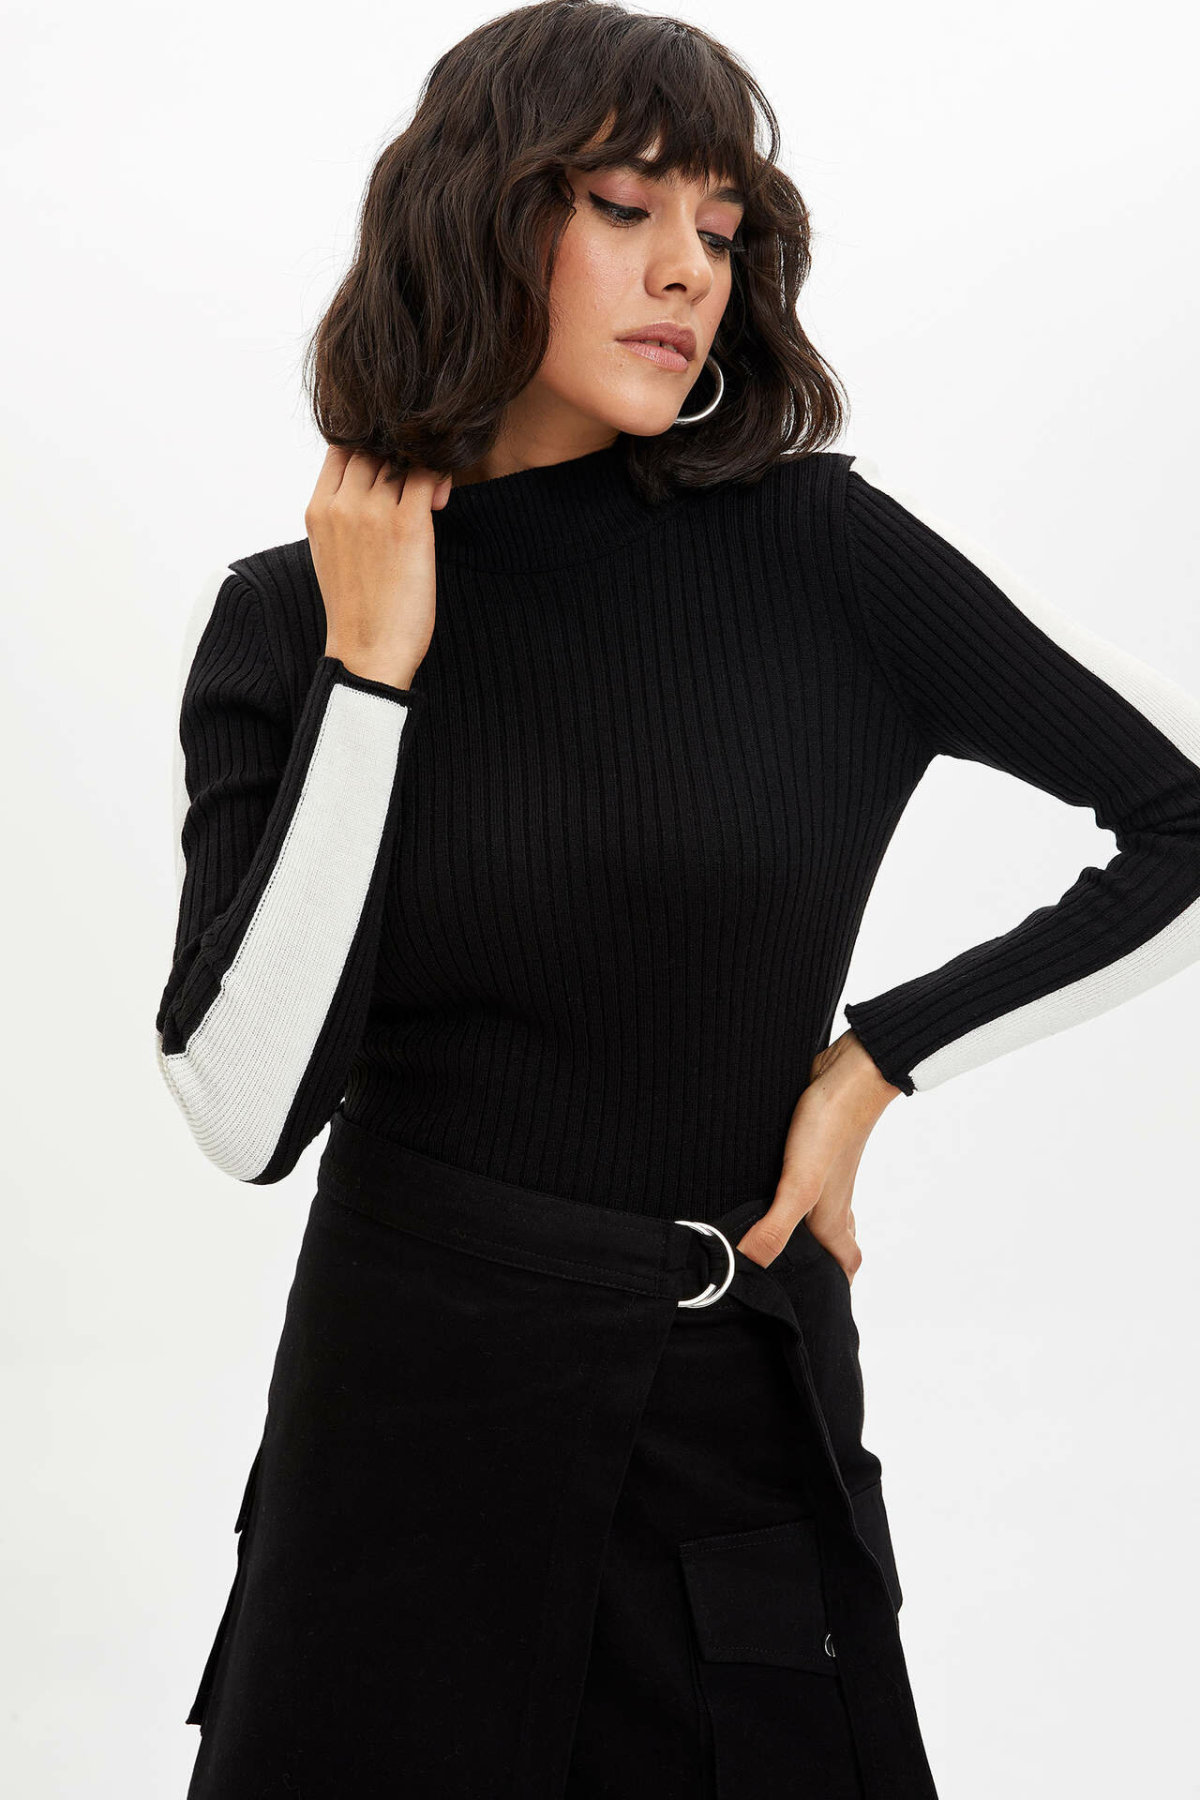 DeFacto Women Turtleneck Pullovers Skirt Sets Ladies Skinny Solid A-line Skirts Two-piece Female Clothing Autumn - L8853AZ19WN